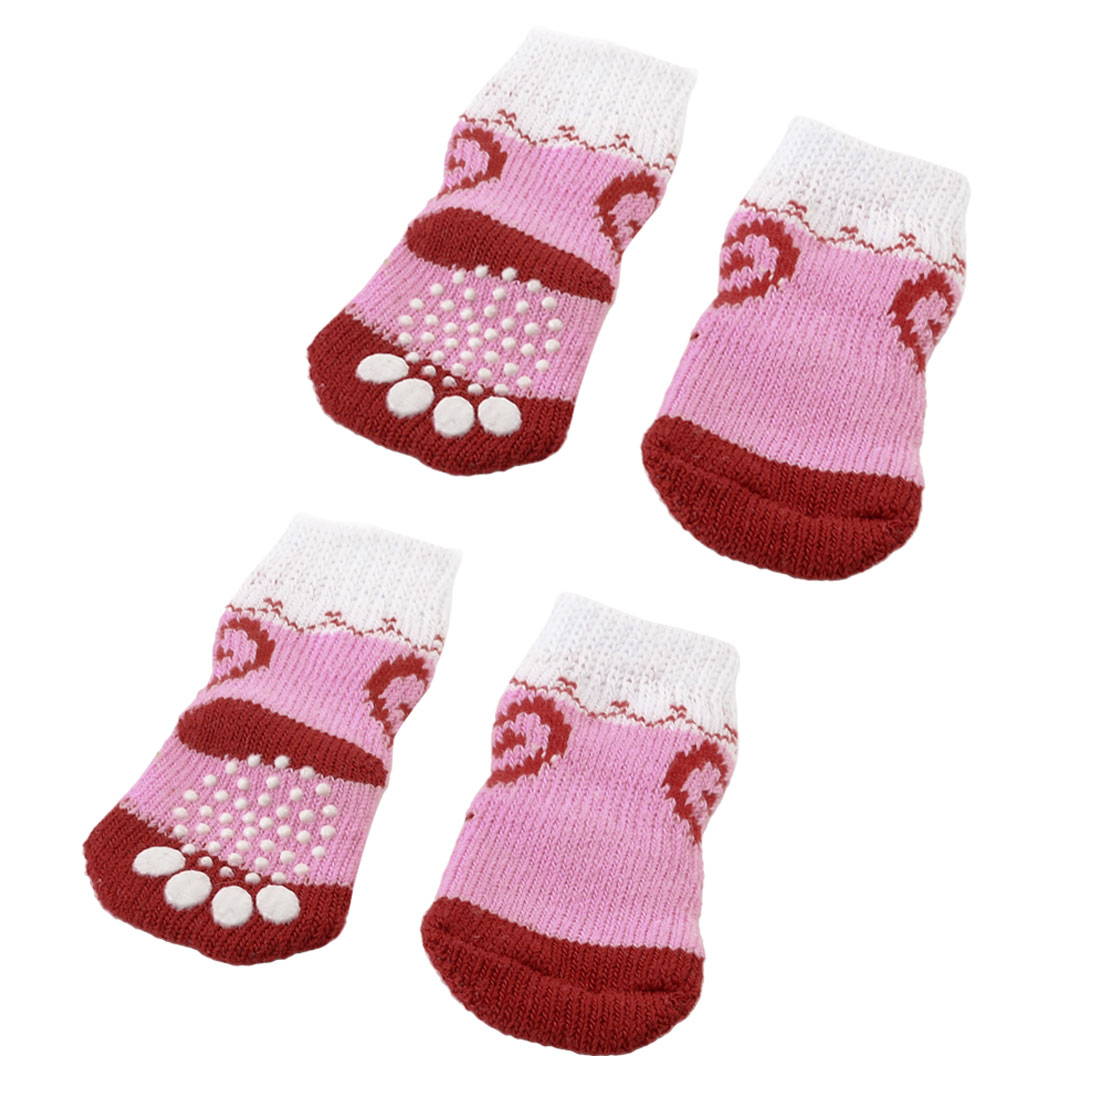 2 Pairs Red Pink Anti Slip Paw Pattern Stretchy Acrylic Pet Dog Puppy Doggie Socks